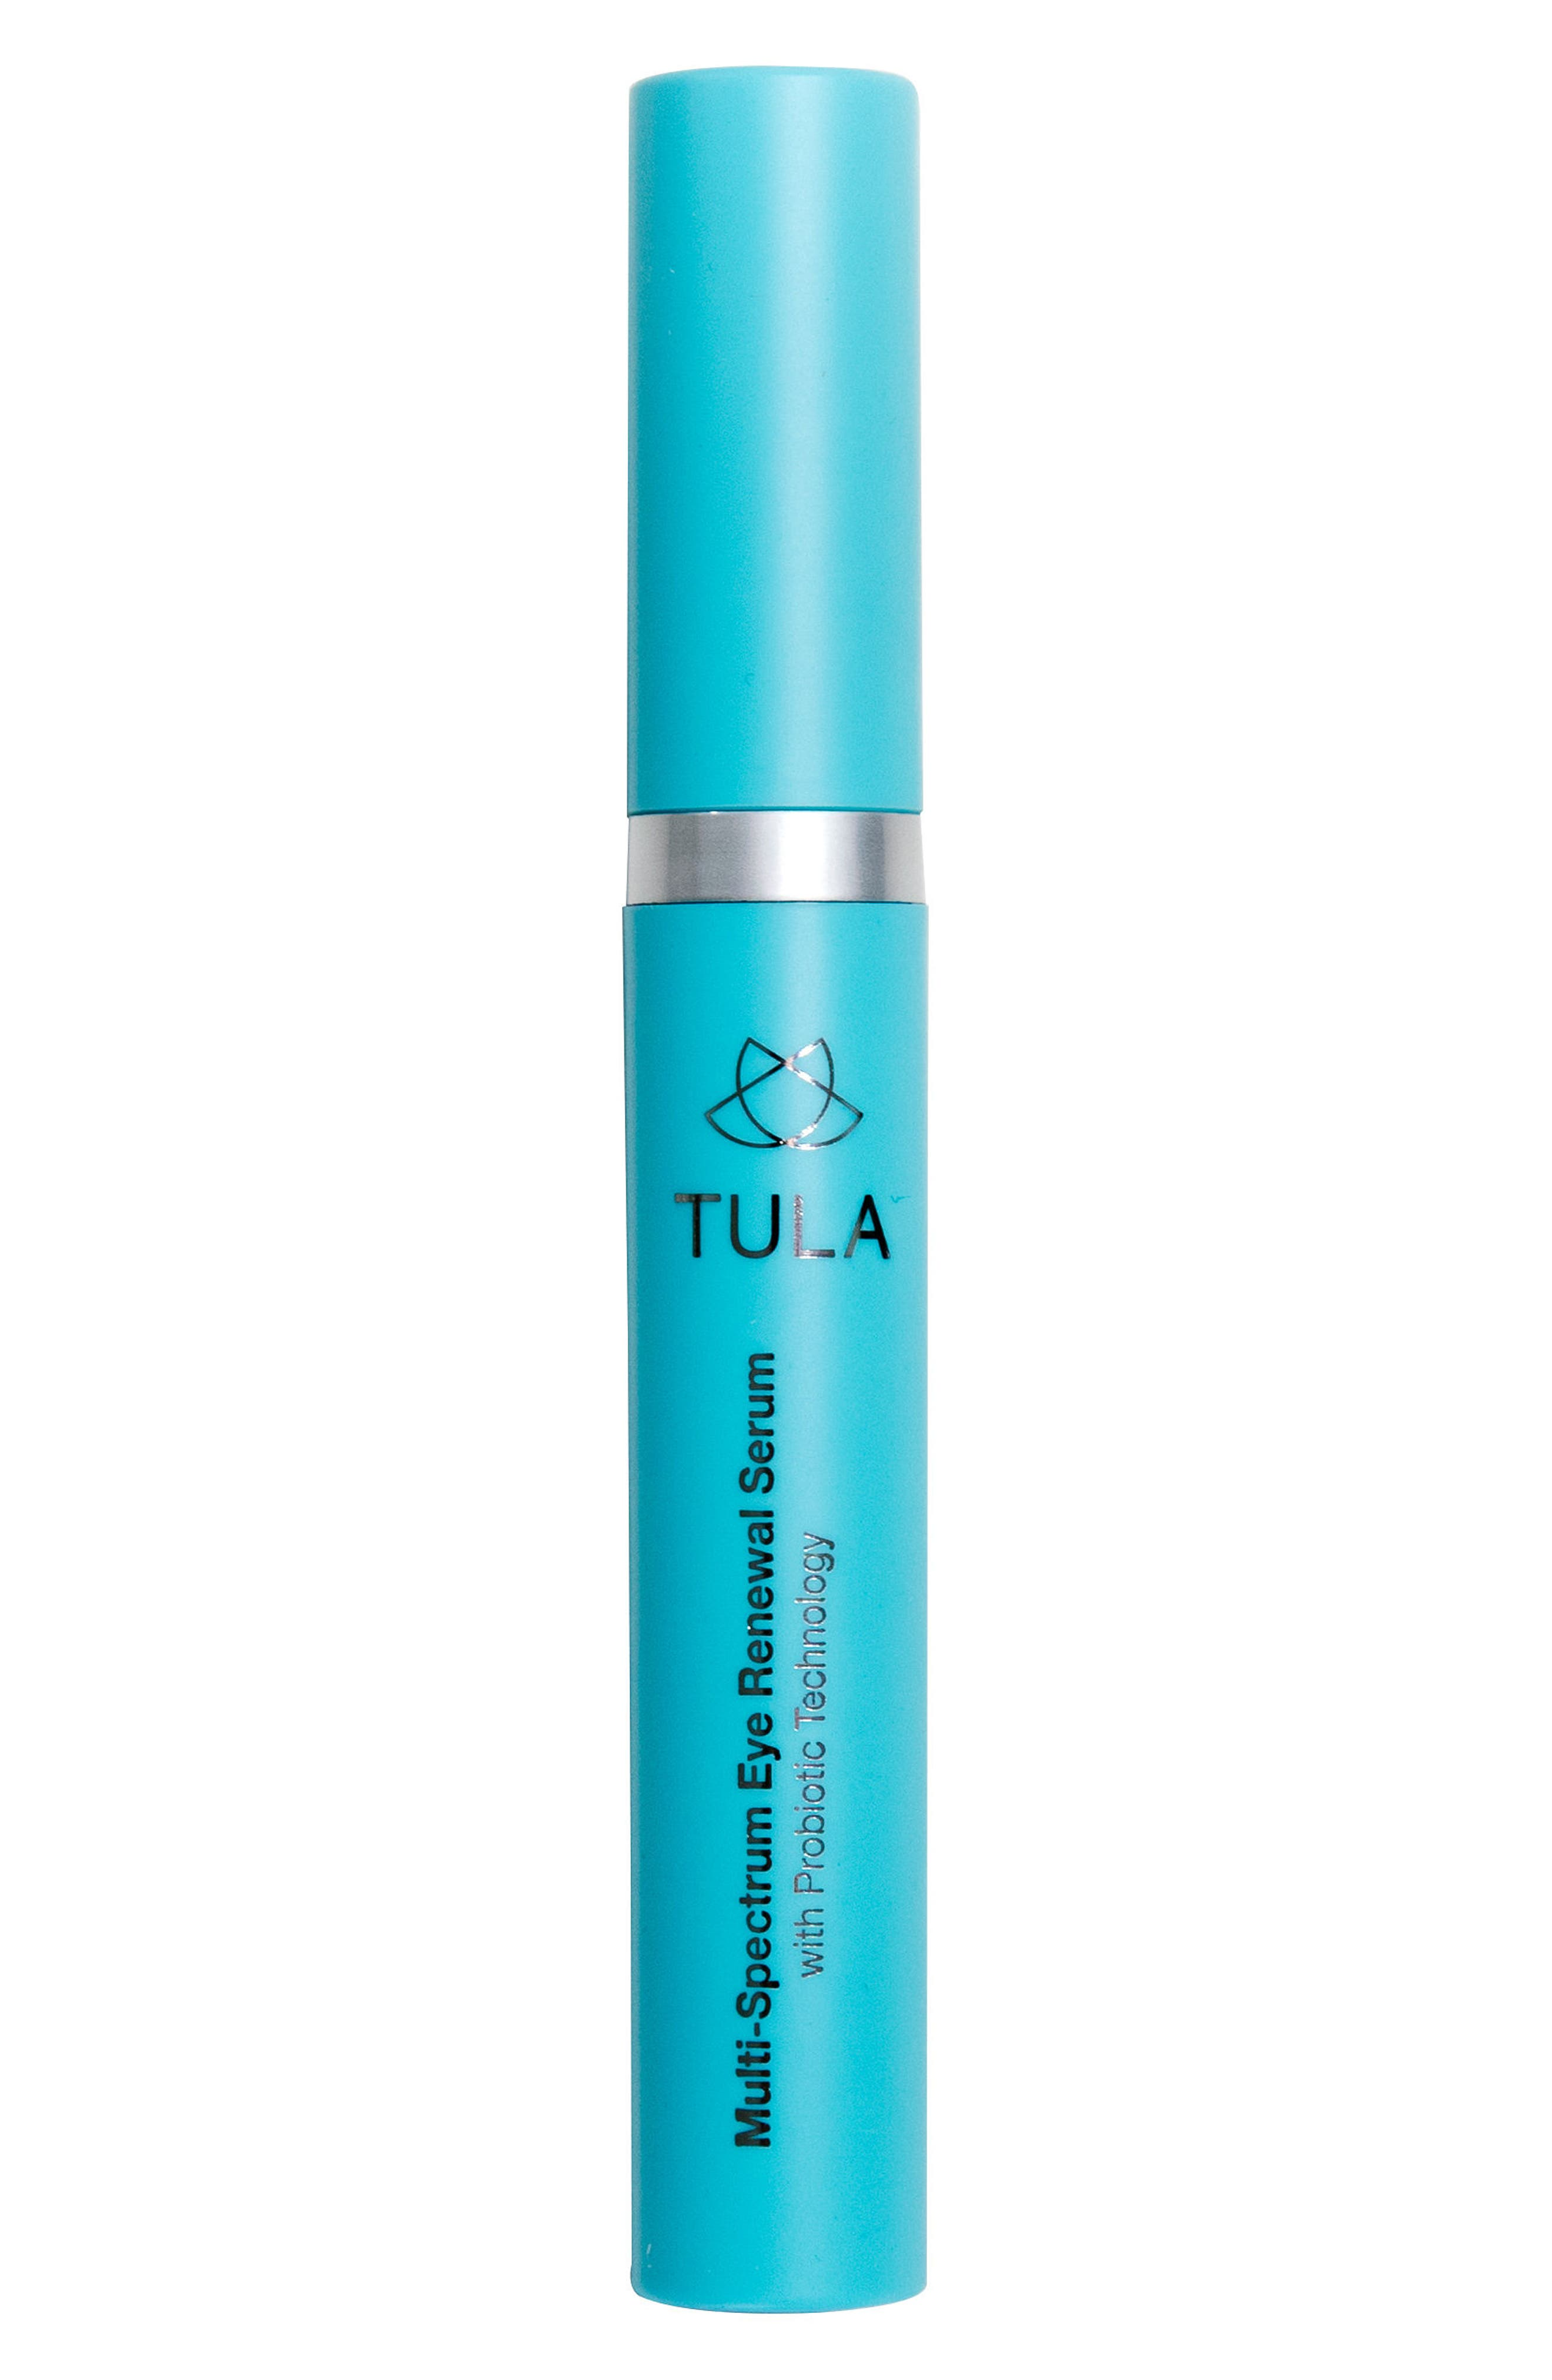 Multi-Spectrum Eye Renewal Serum,                             Main thumbnail 1, color,                             No Color